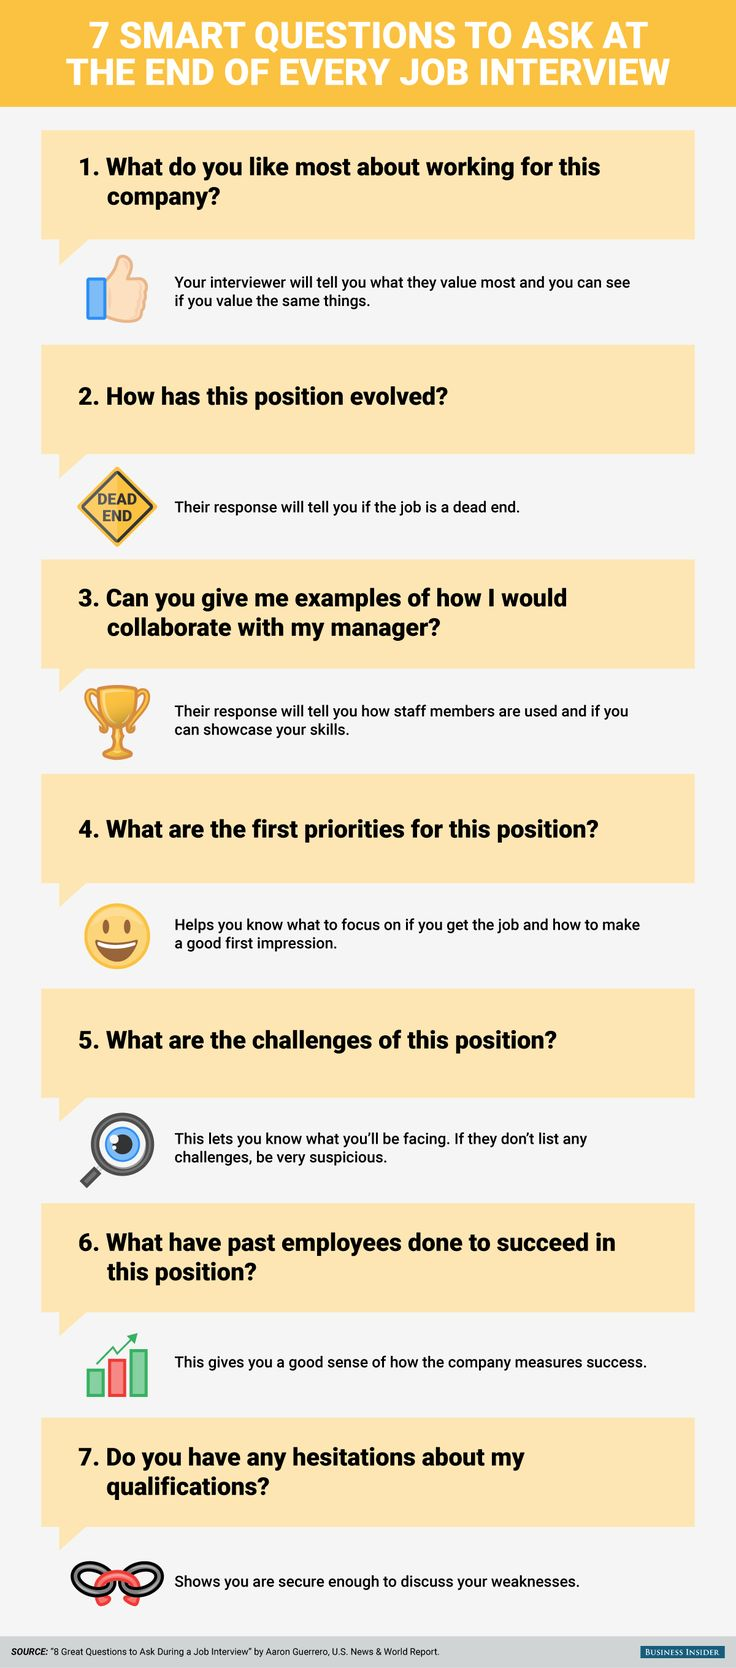 433 best images about Interview Tips on Pinterest | Career advice ...